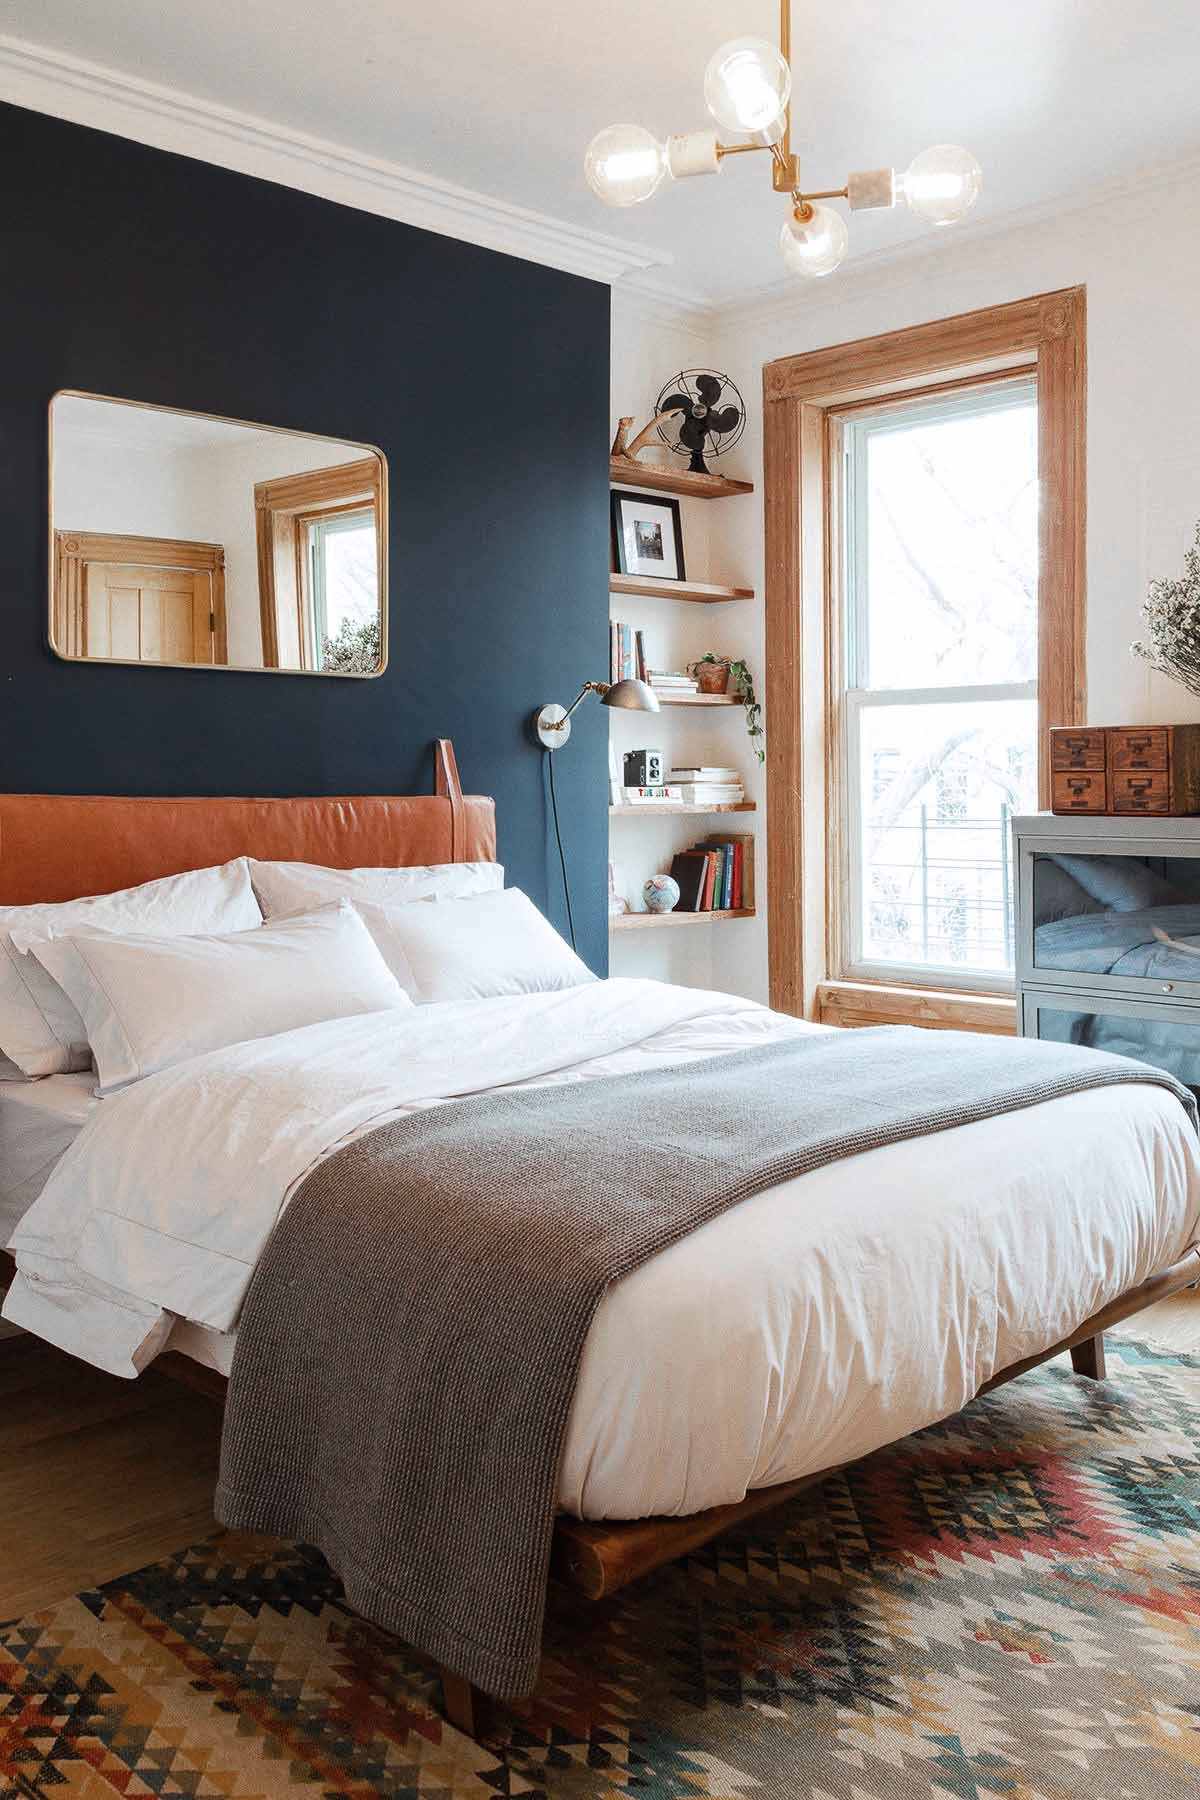 Bedroom accent wall ideas